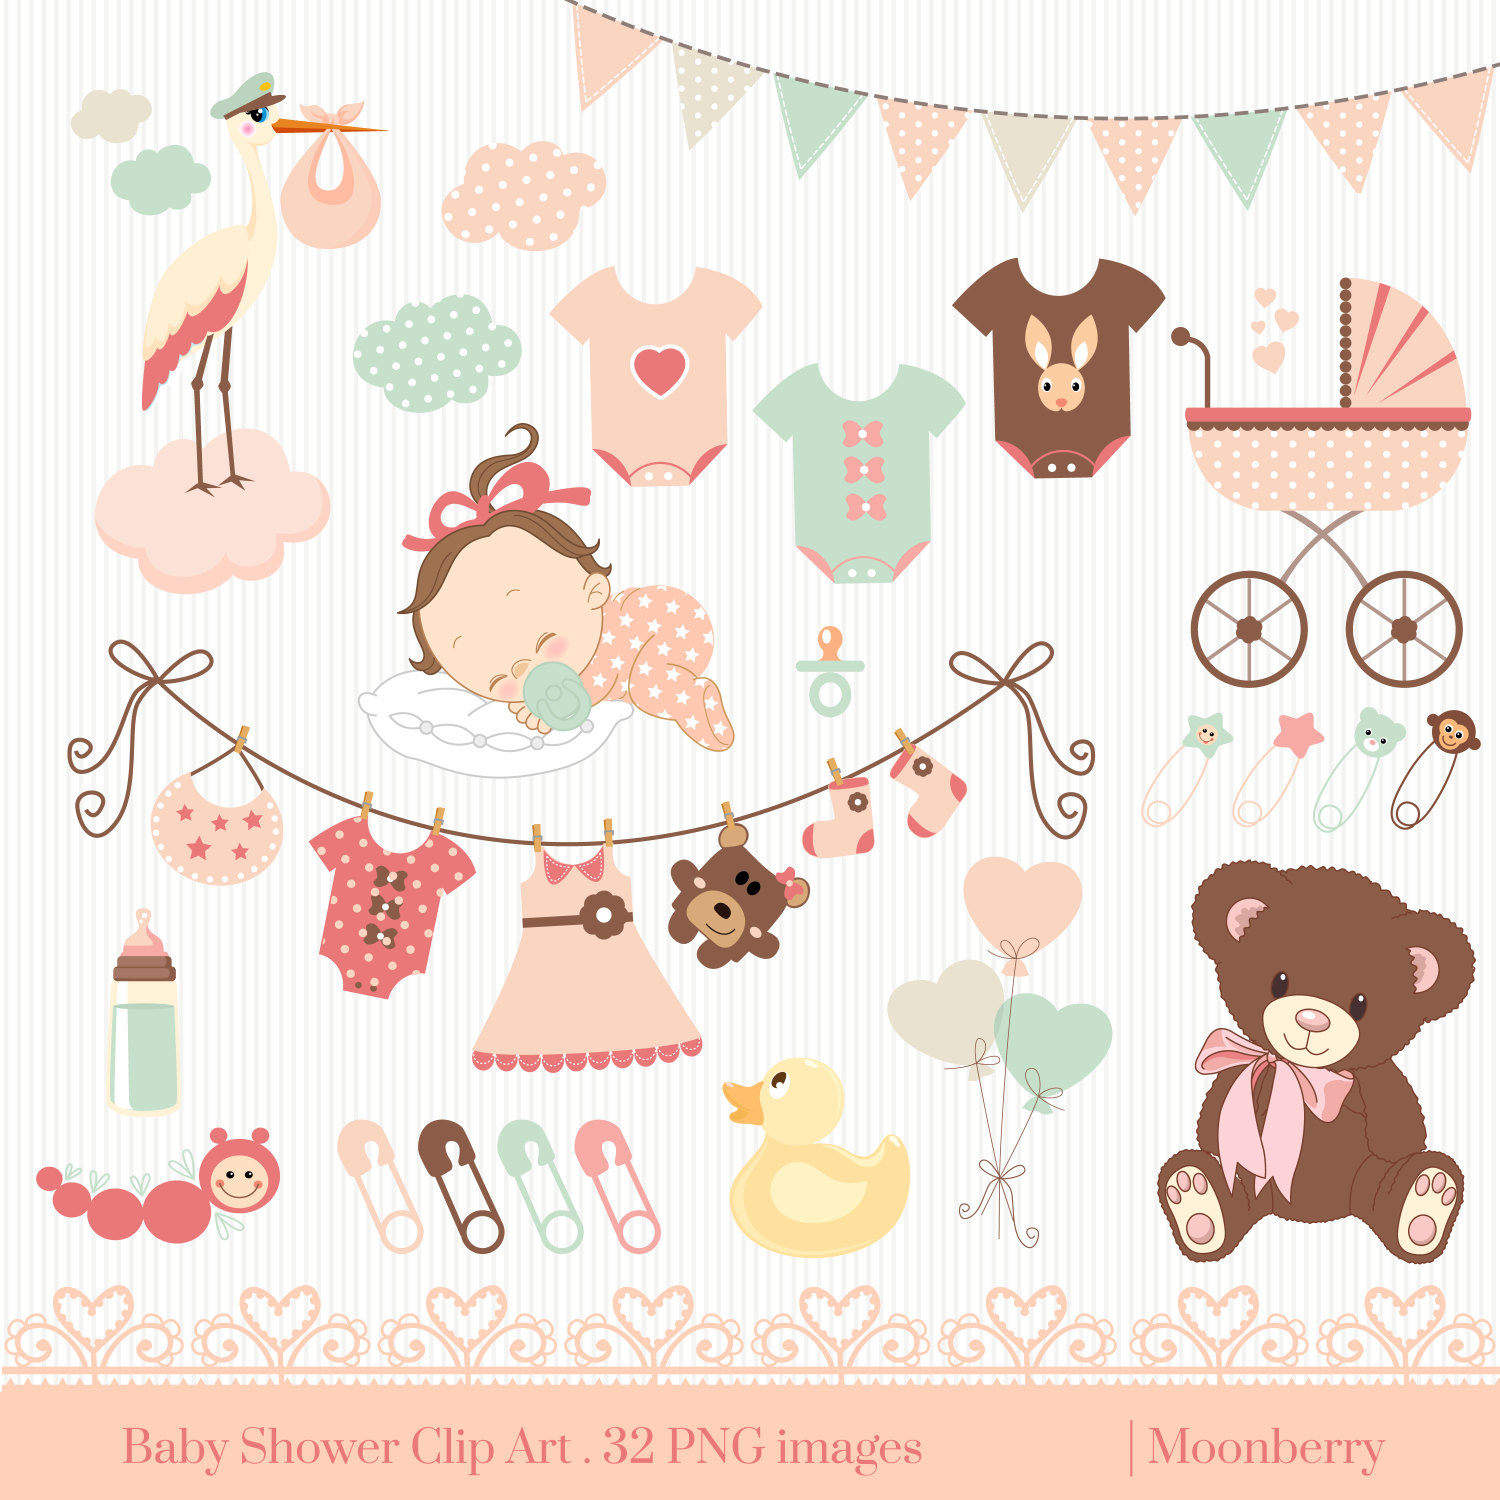 Baby clipart baby shower. Clip art